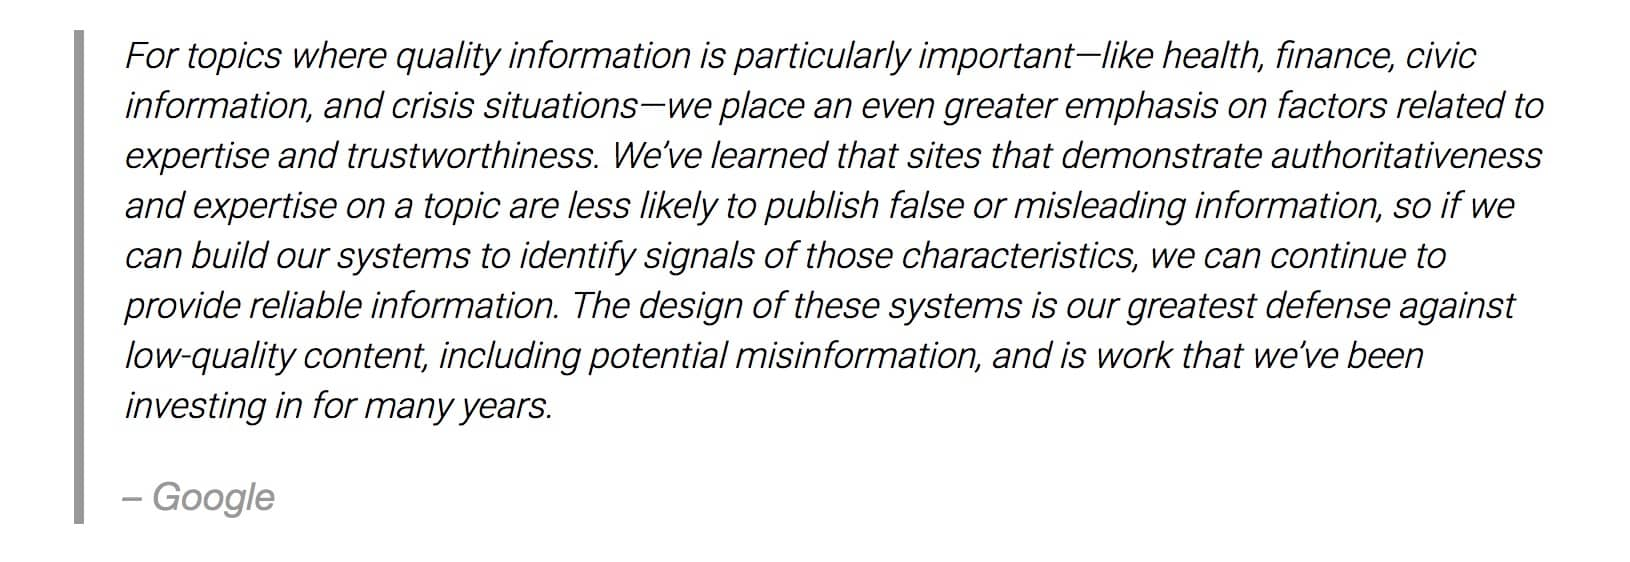 authority profile quote from google